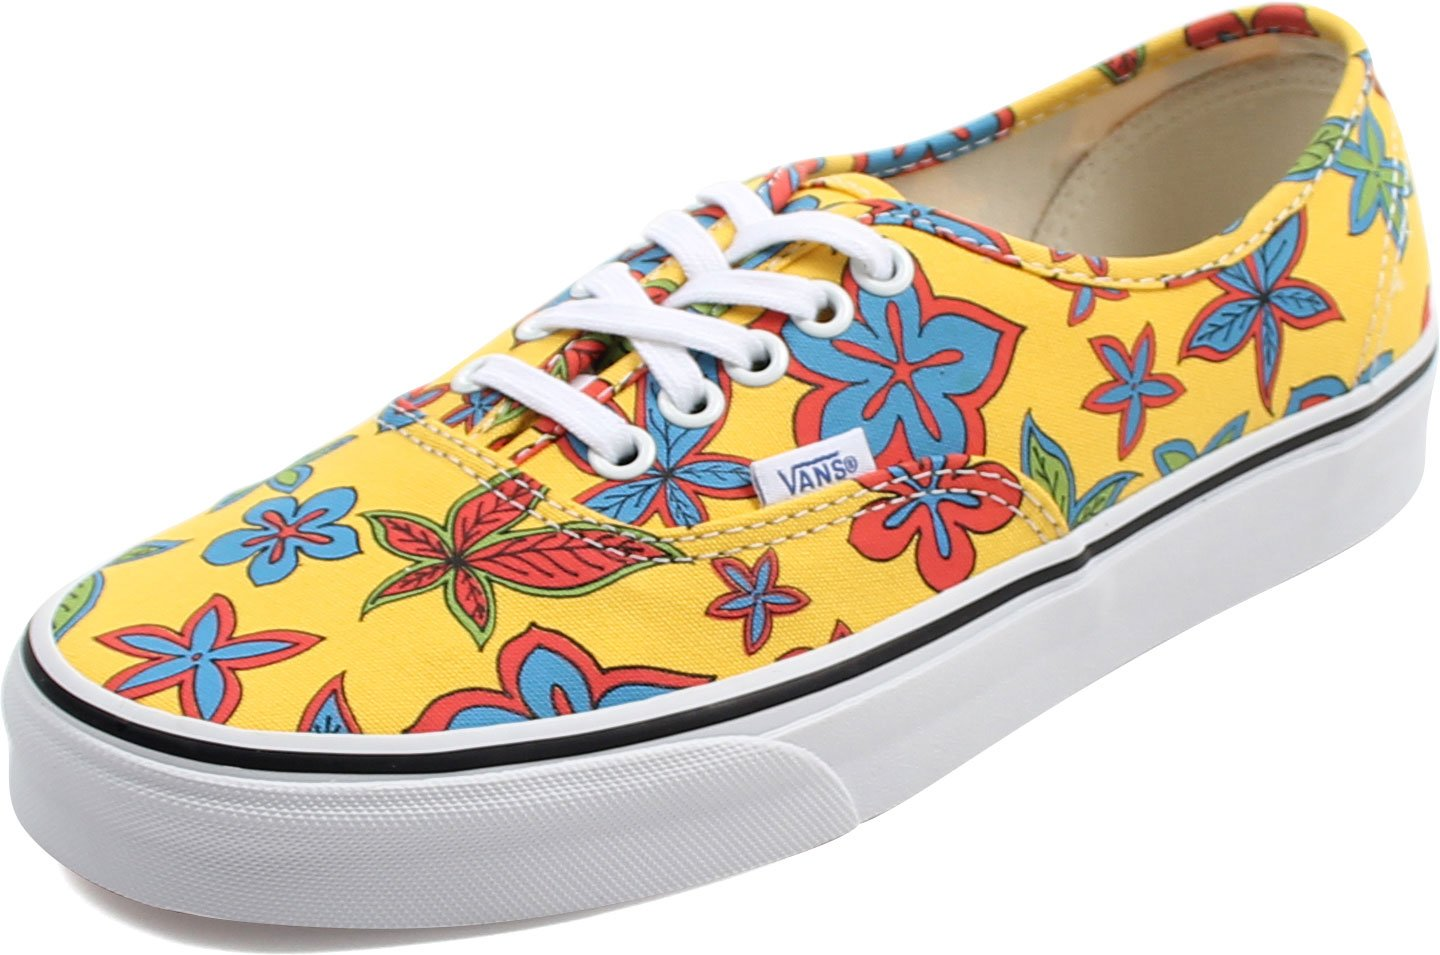 [バンズ] VANS VANS AUTHENTIC VEE3 B01N6OJ5LL 12 B(M) US Women / 10.5 D(M) US Men|Floral/Yellow Floral/Yellow 12 B(M) US Women / 10.5 D(M) US Men